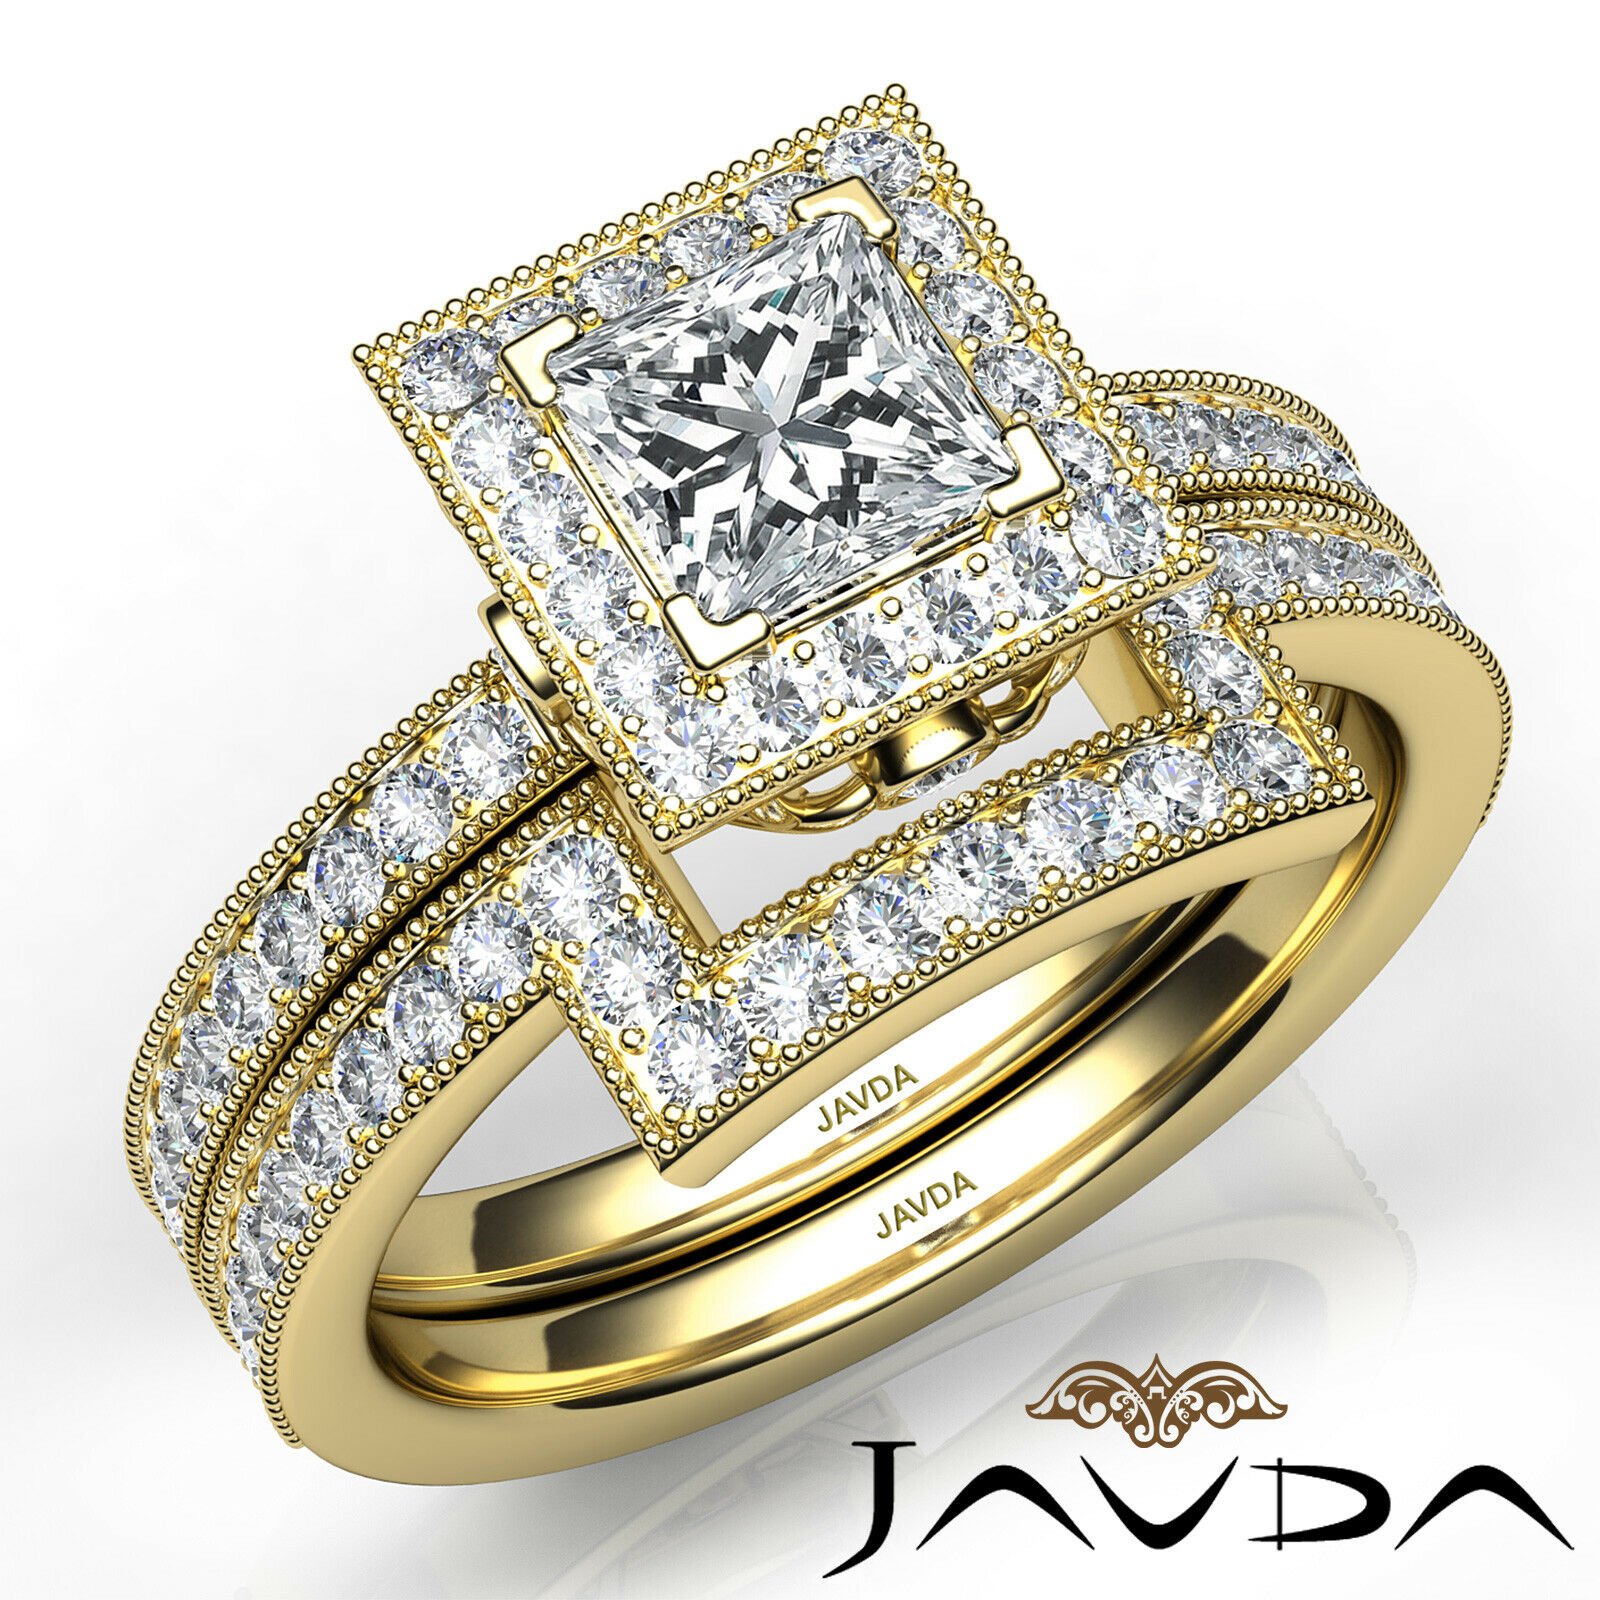 1.9ct Milgrain Edge Bridal Set Princess Diamond Engagement Ring GIA F-VS2 W Gold 9